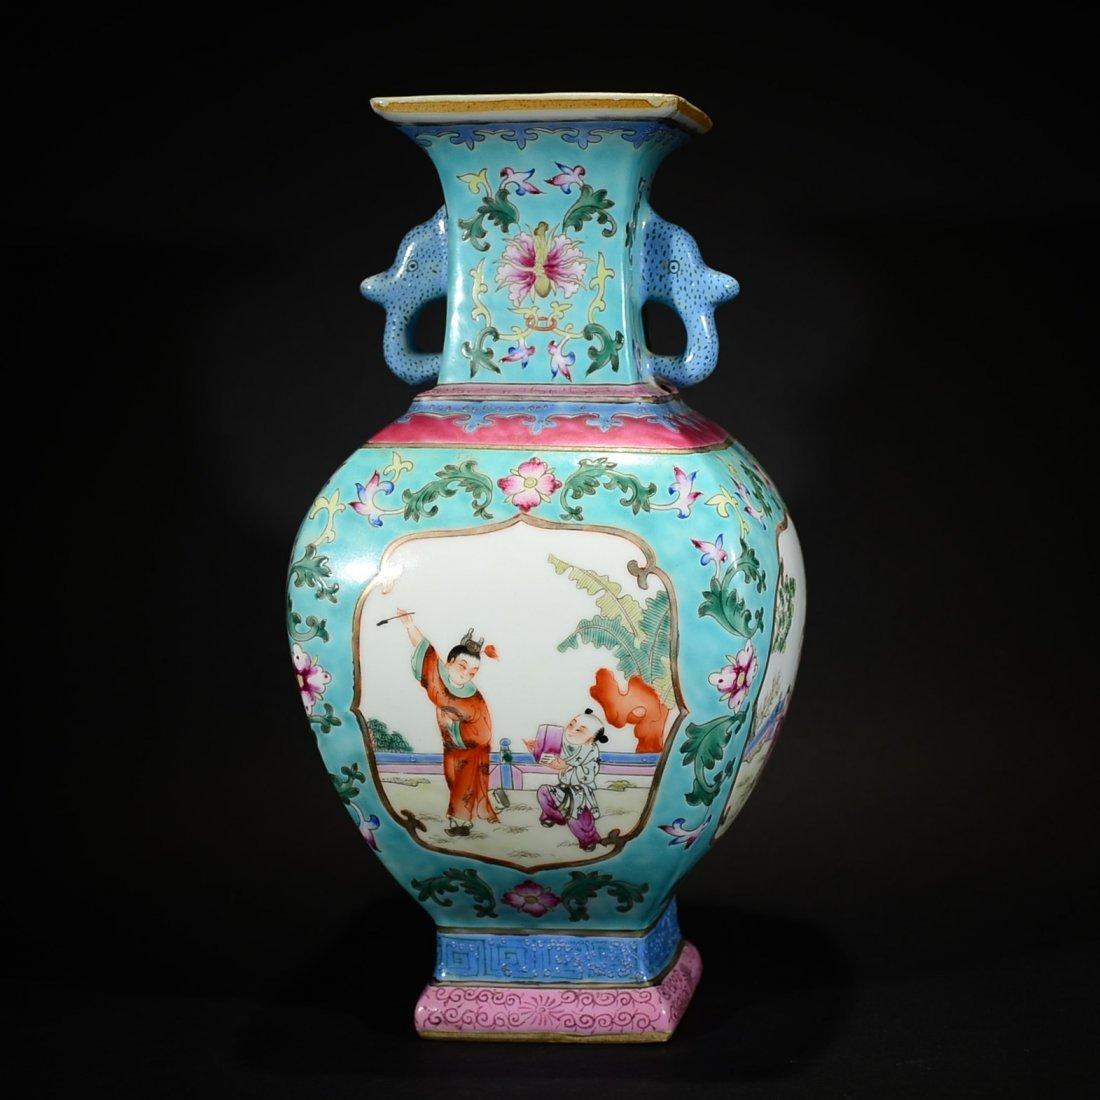 QING D., A FAMILLE ROSE CHILD PLAYING SQUARE VASE WITH